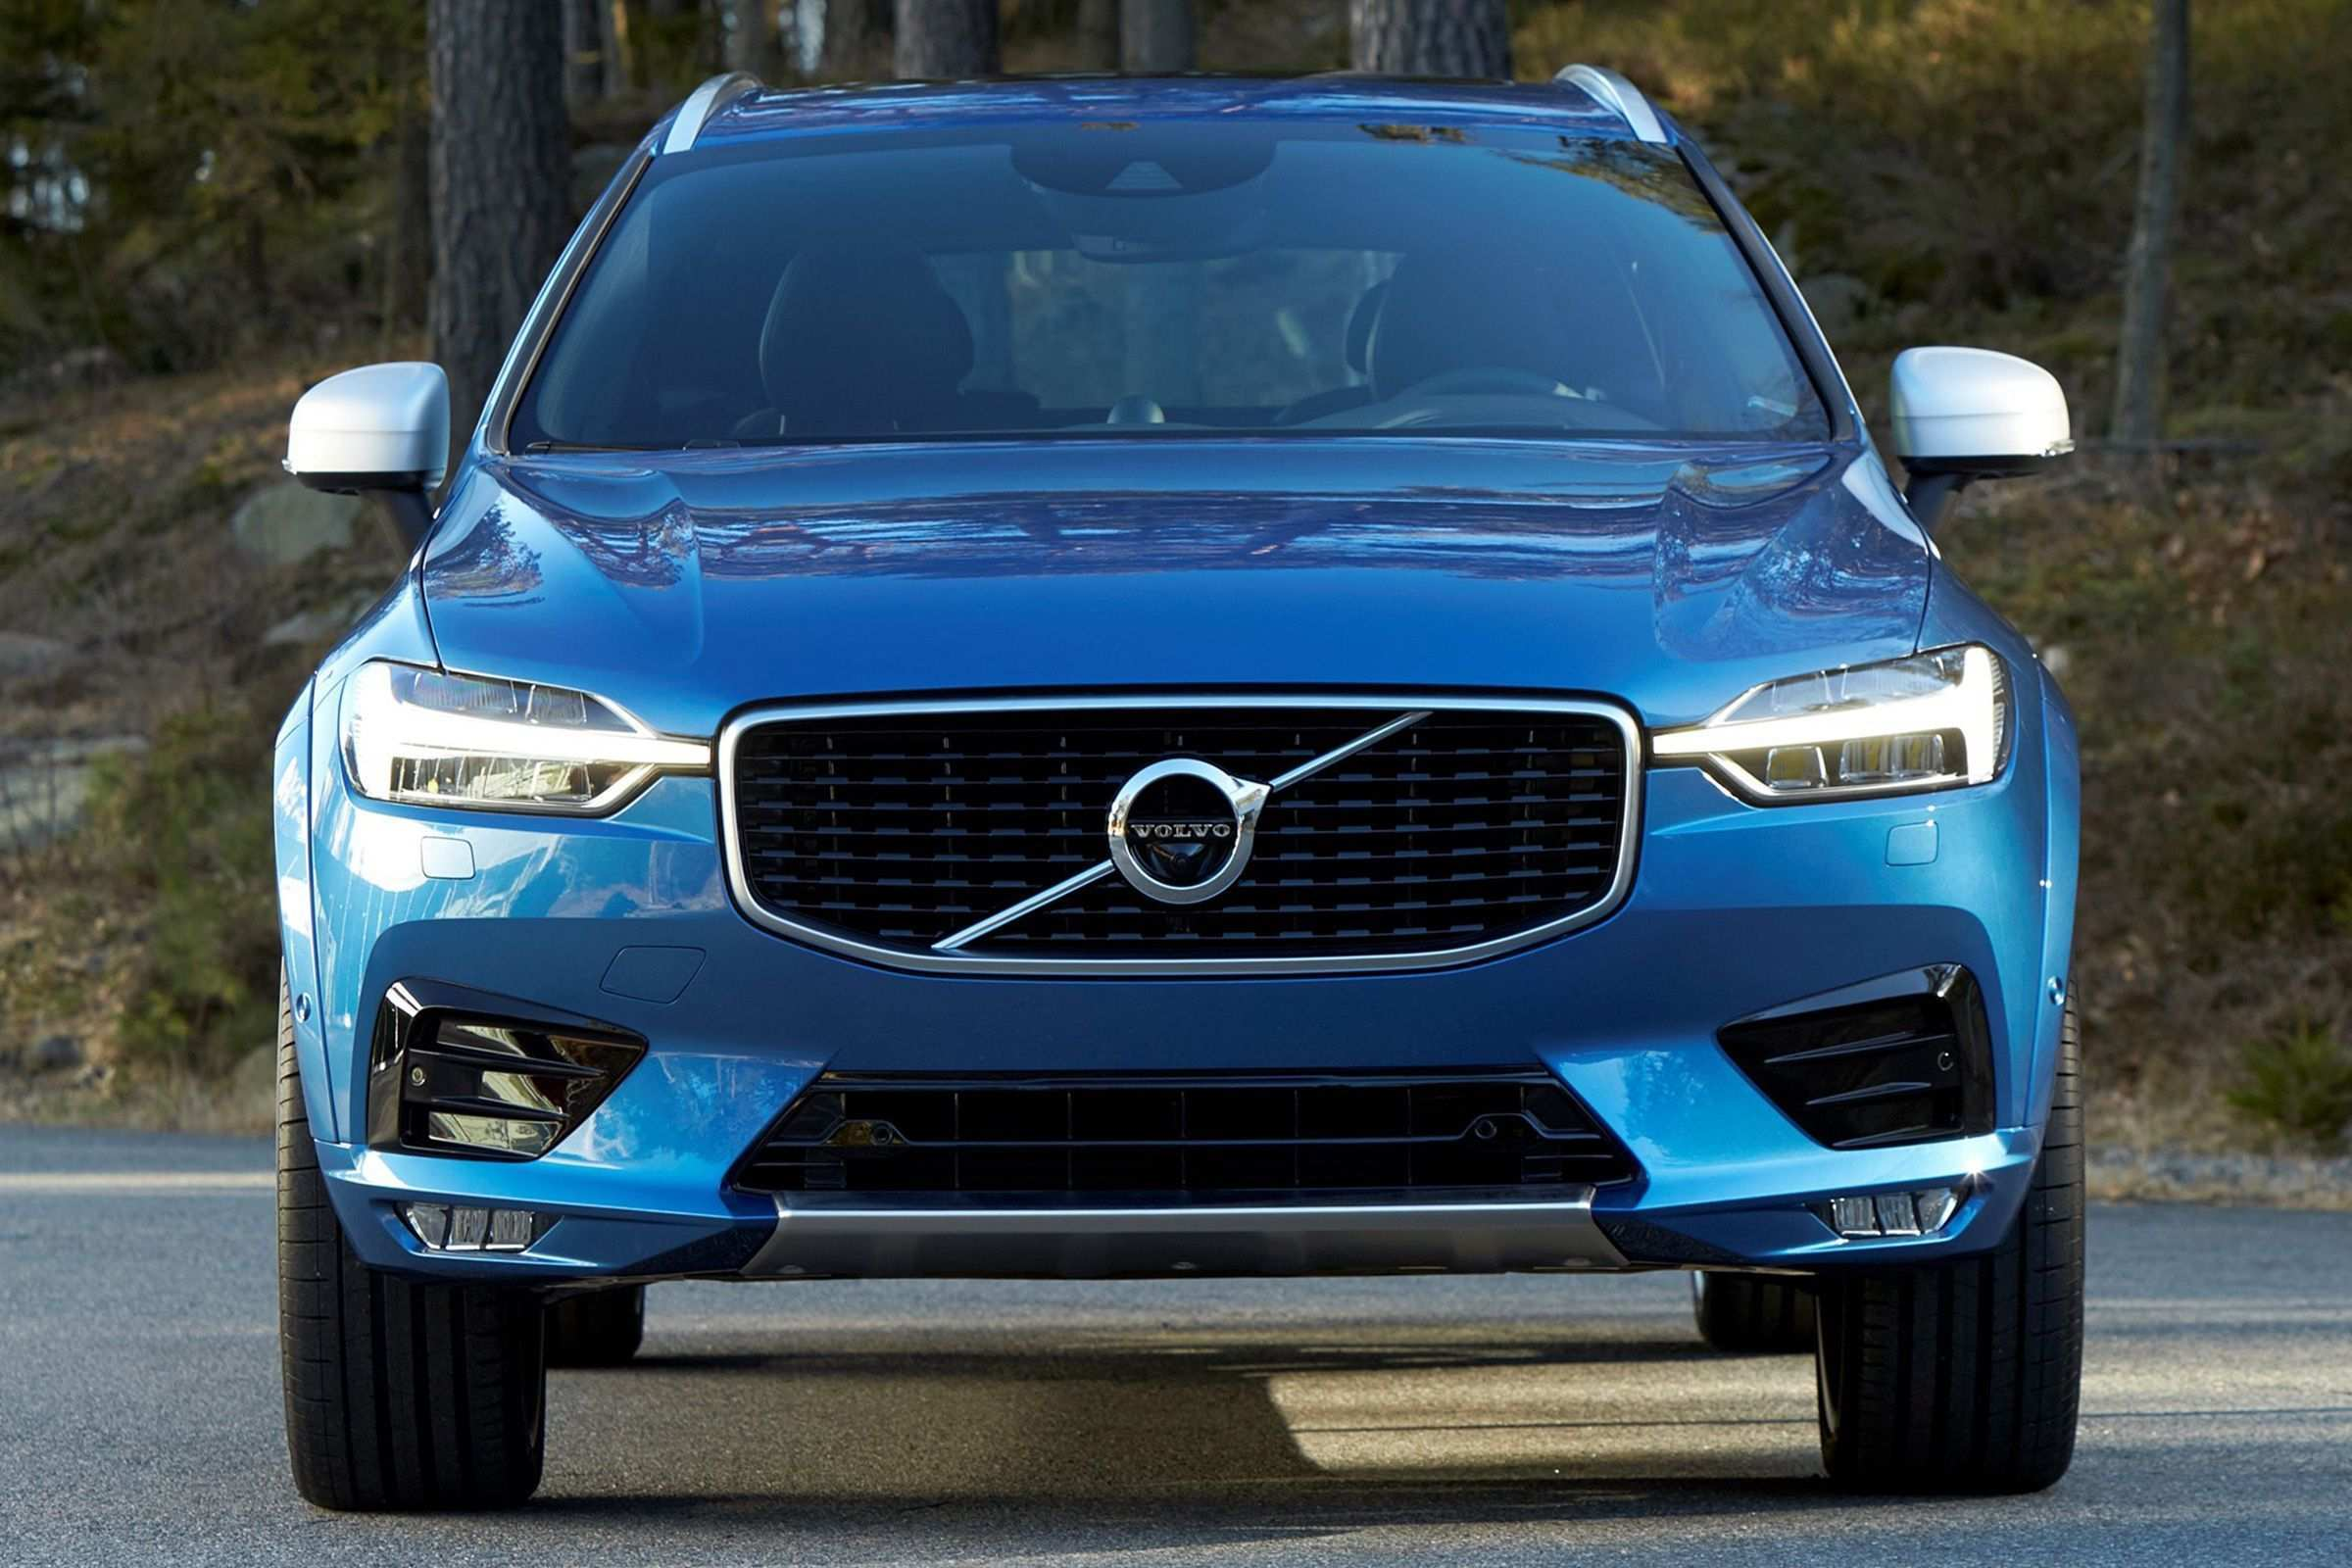 67 Concept of Volvo Range 2020 Price and Review by Volvo Range 2020